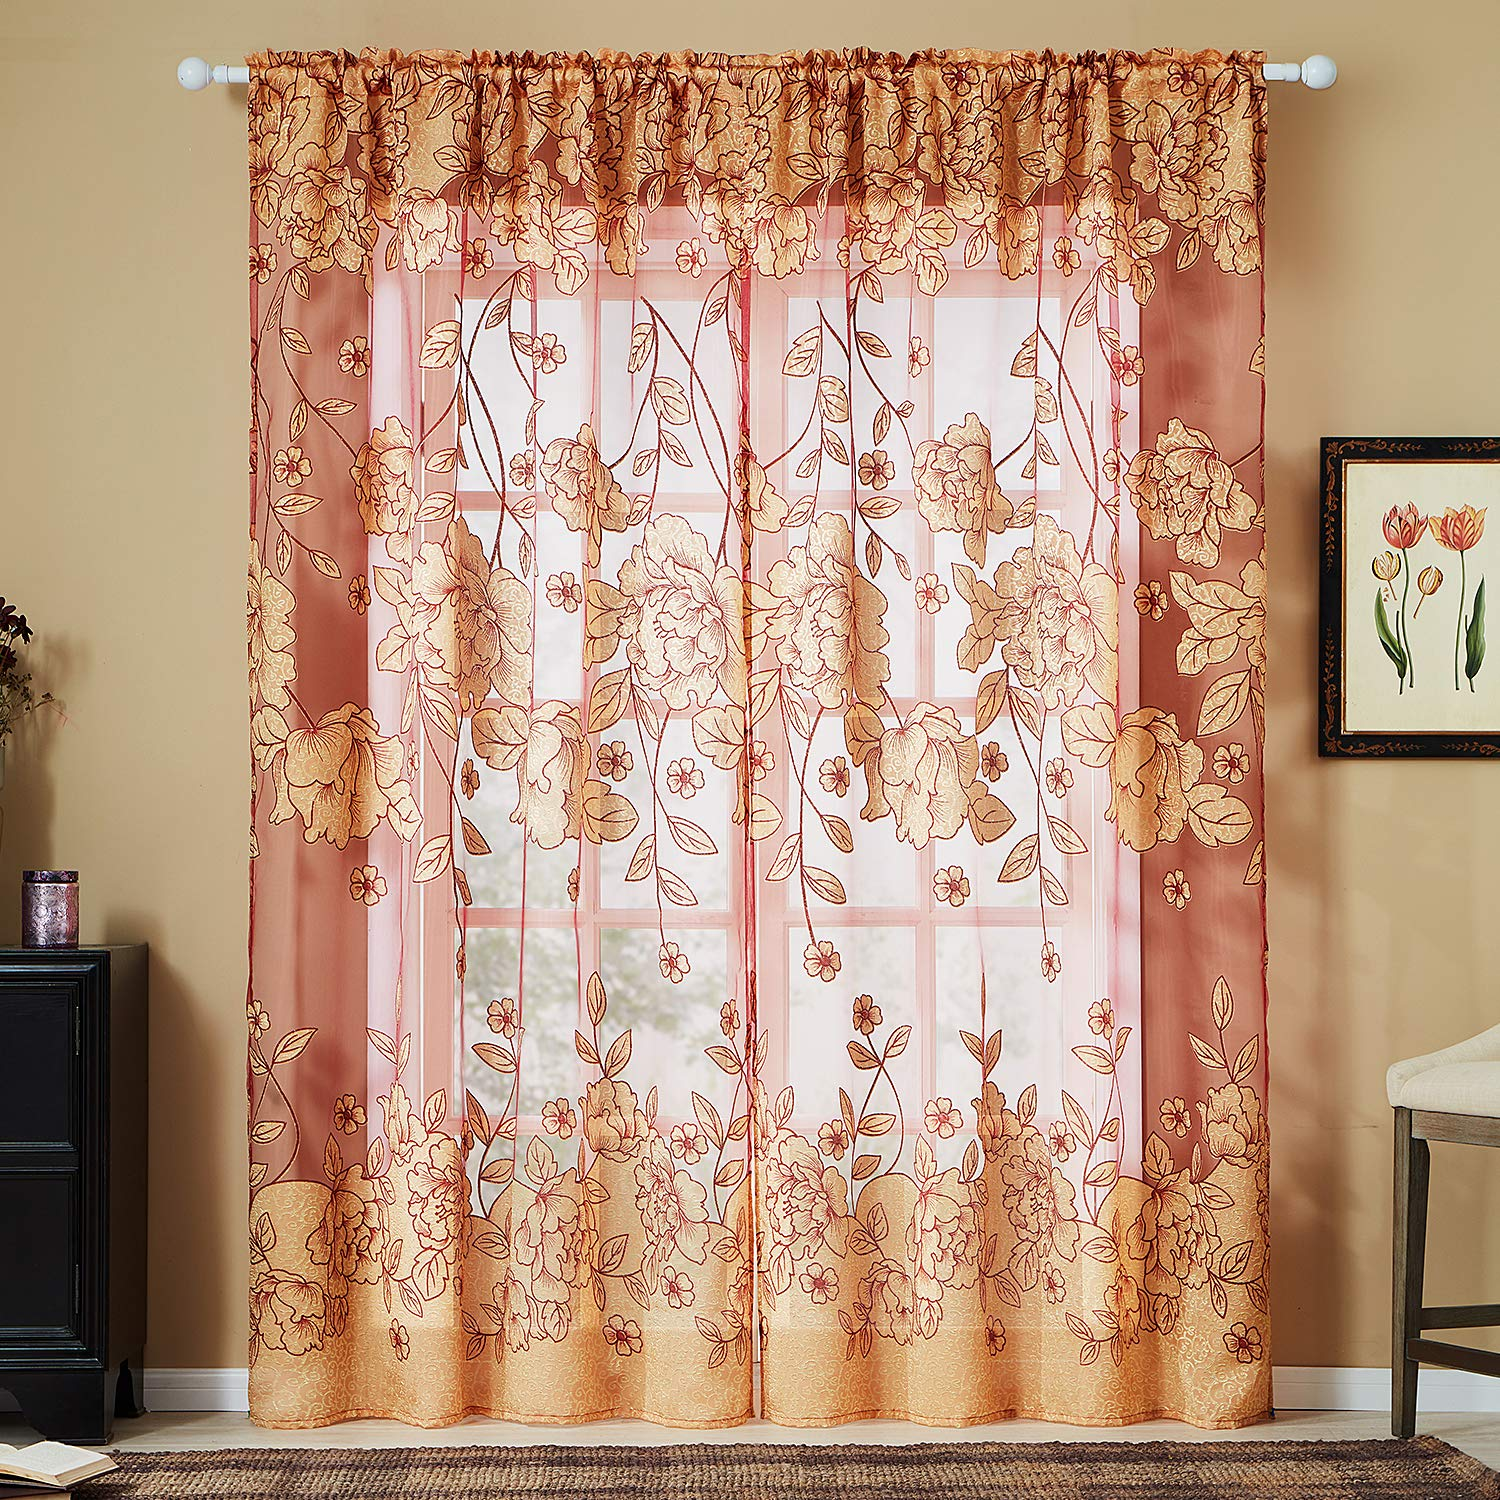 Top Finel Grommet Kitchen Tier Valance 18 Inch Length Printed Butterfly Short Sheer Curtains for Cafe Bathroom Small Window 2 Panels